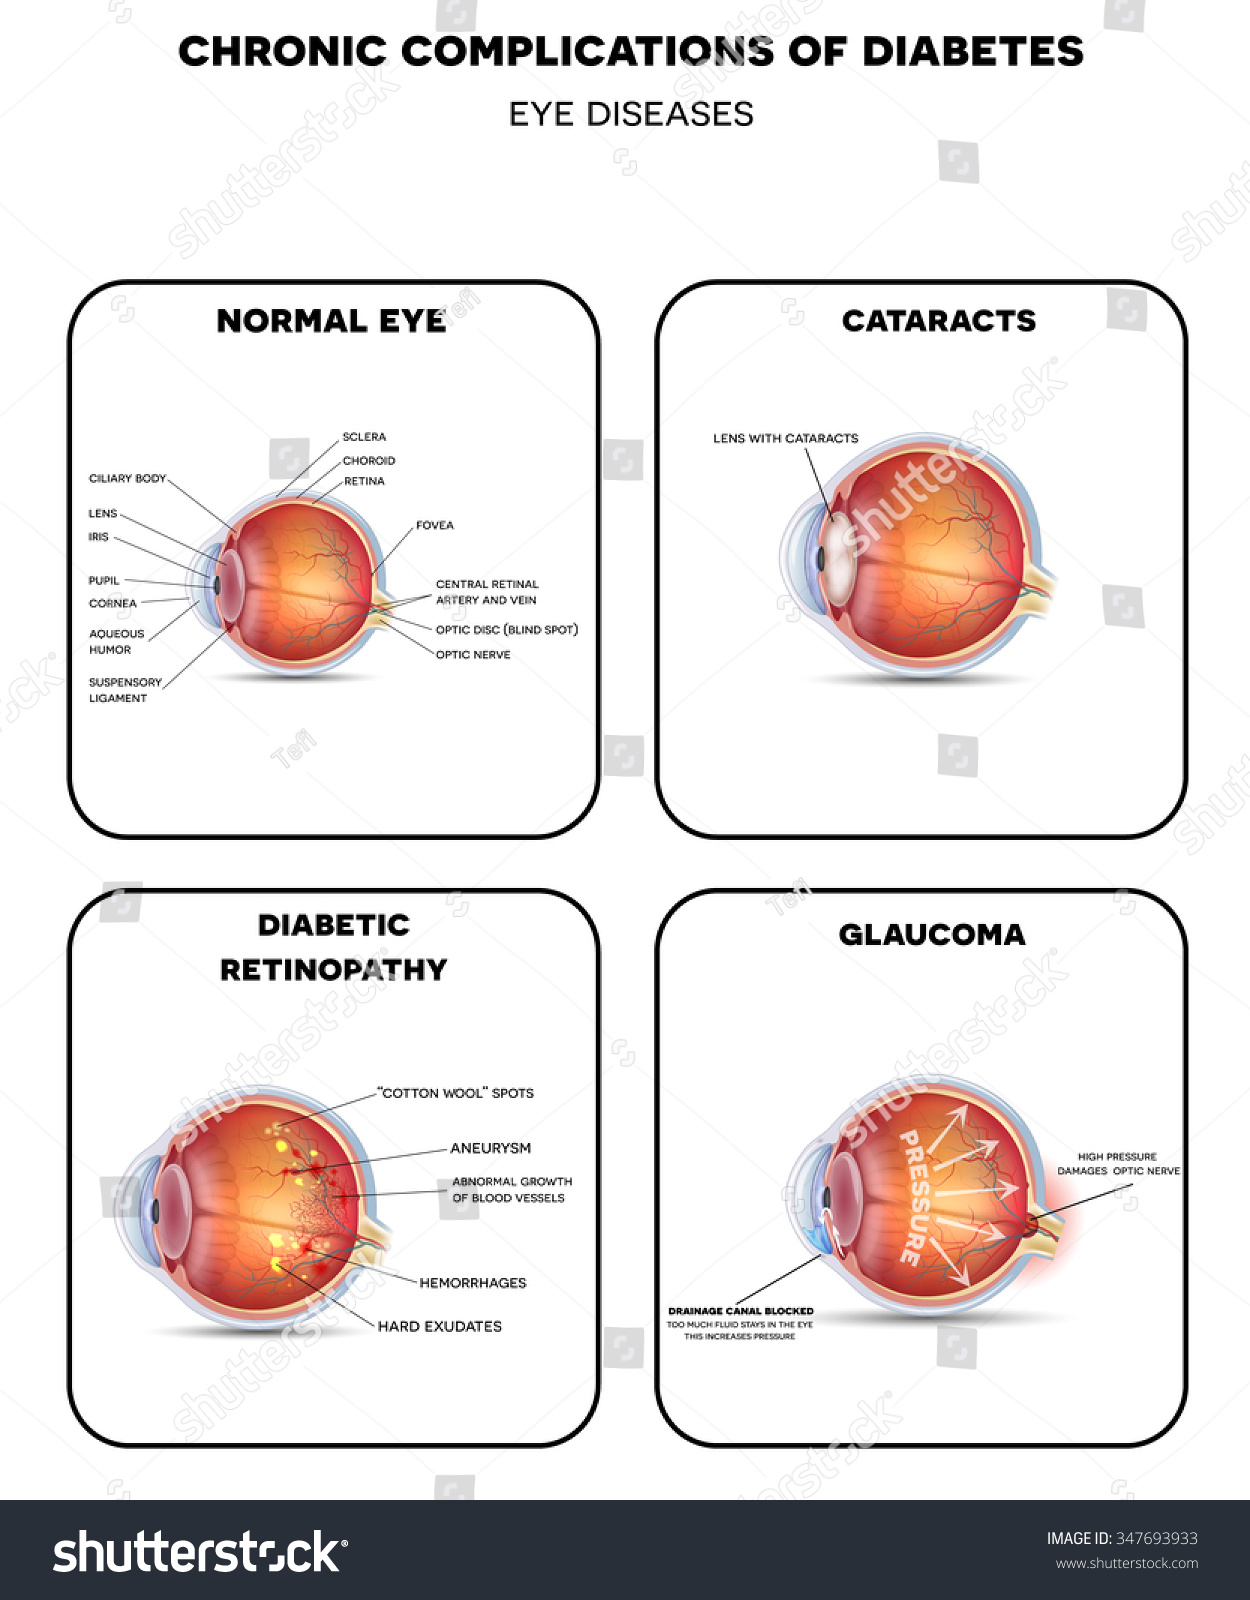 Diabetic Vision Diseases Retinopathy Cataract Glaucoma Stock ...